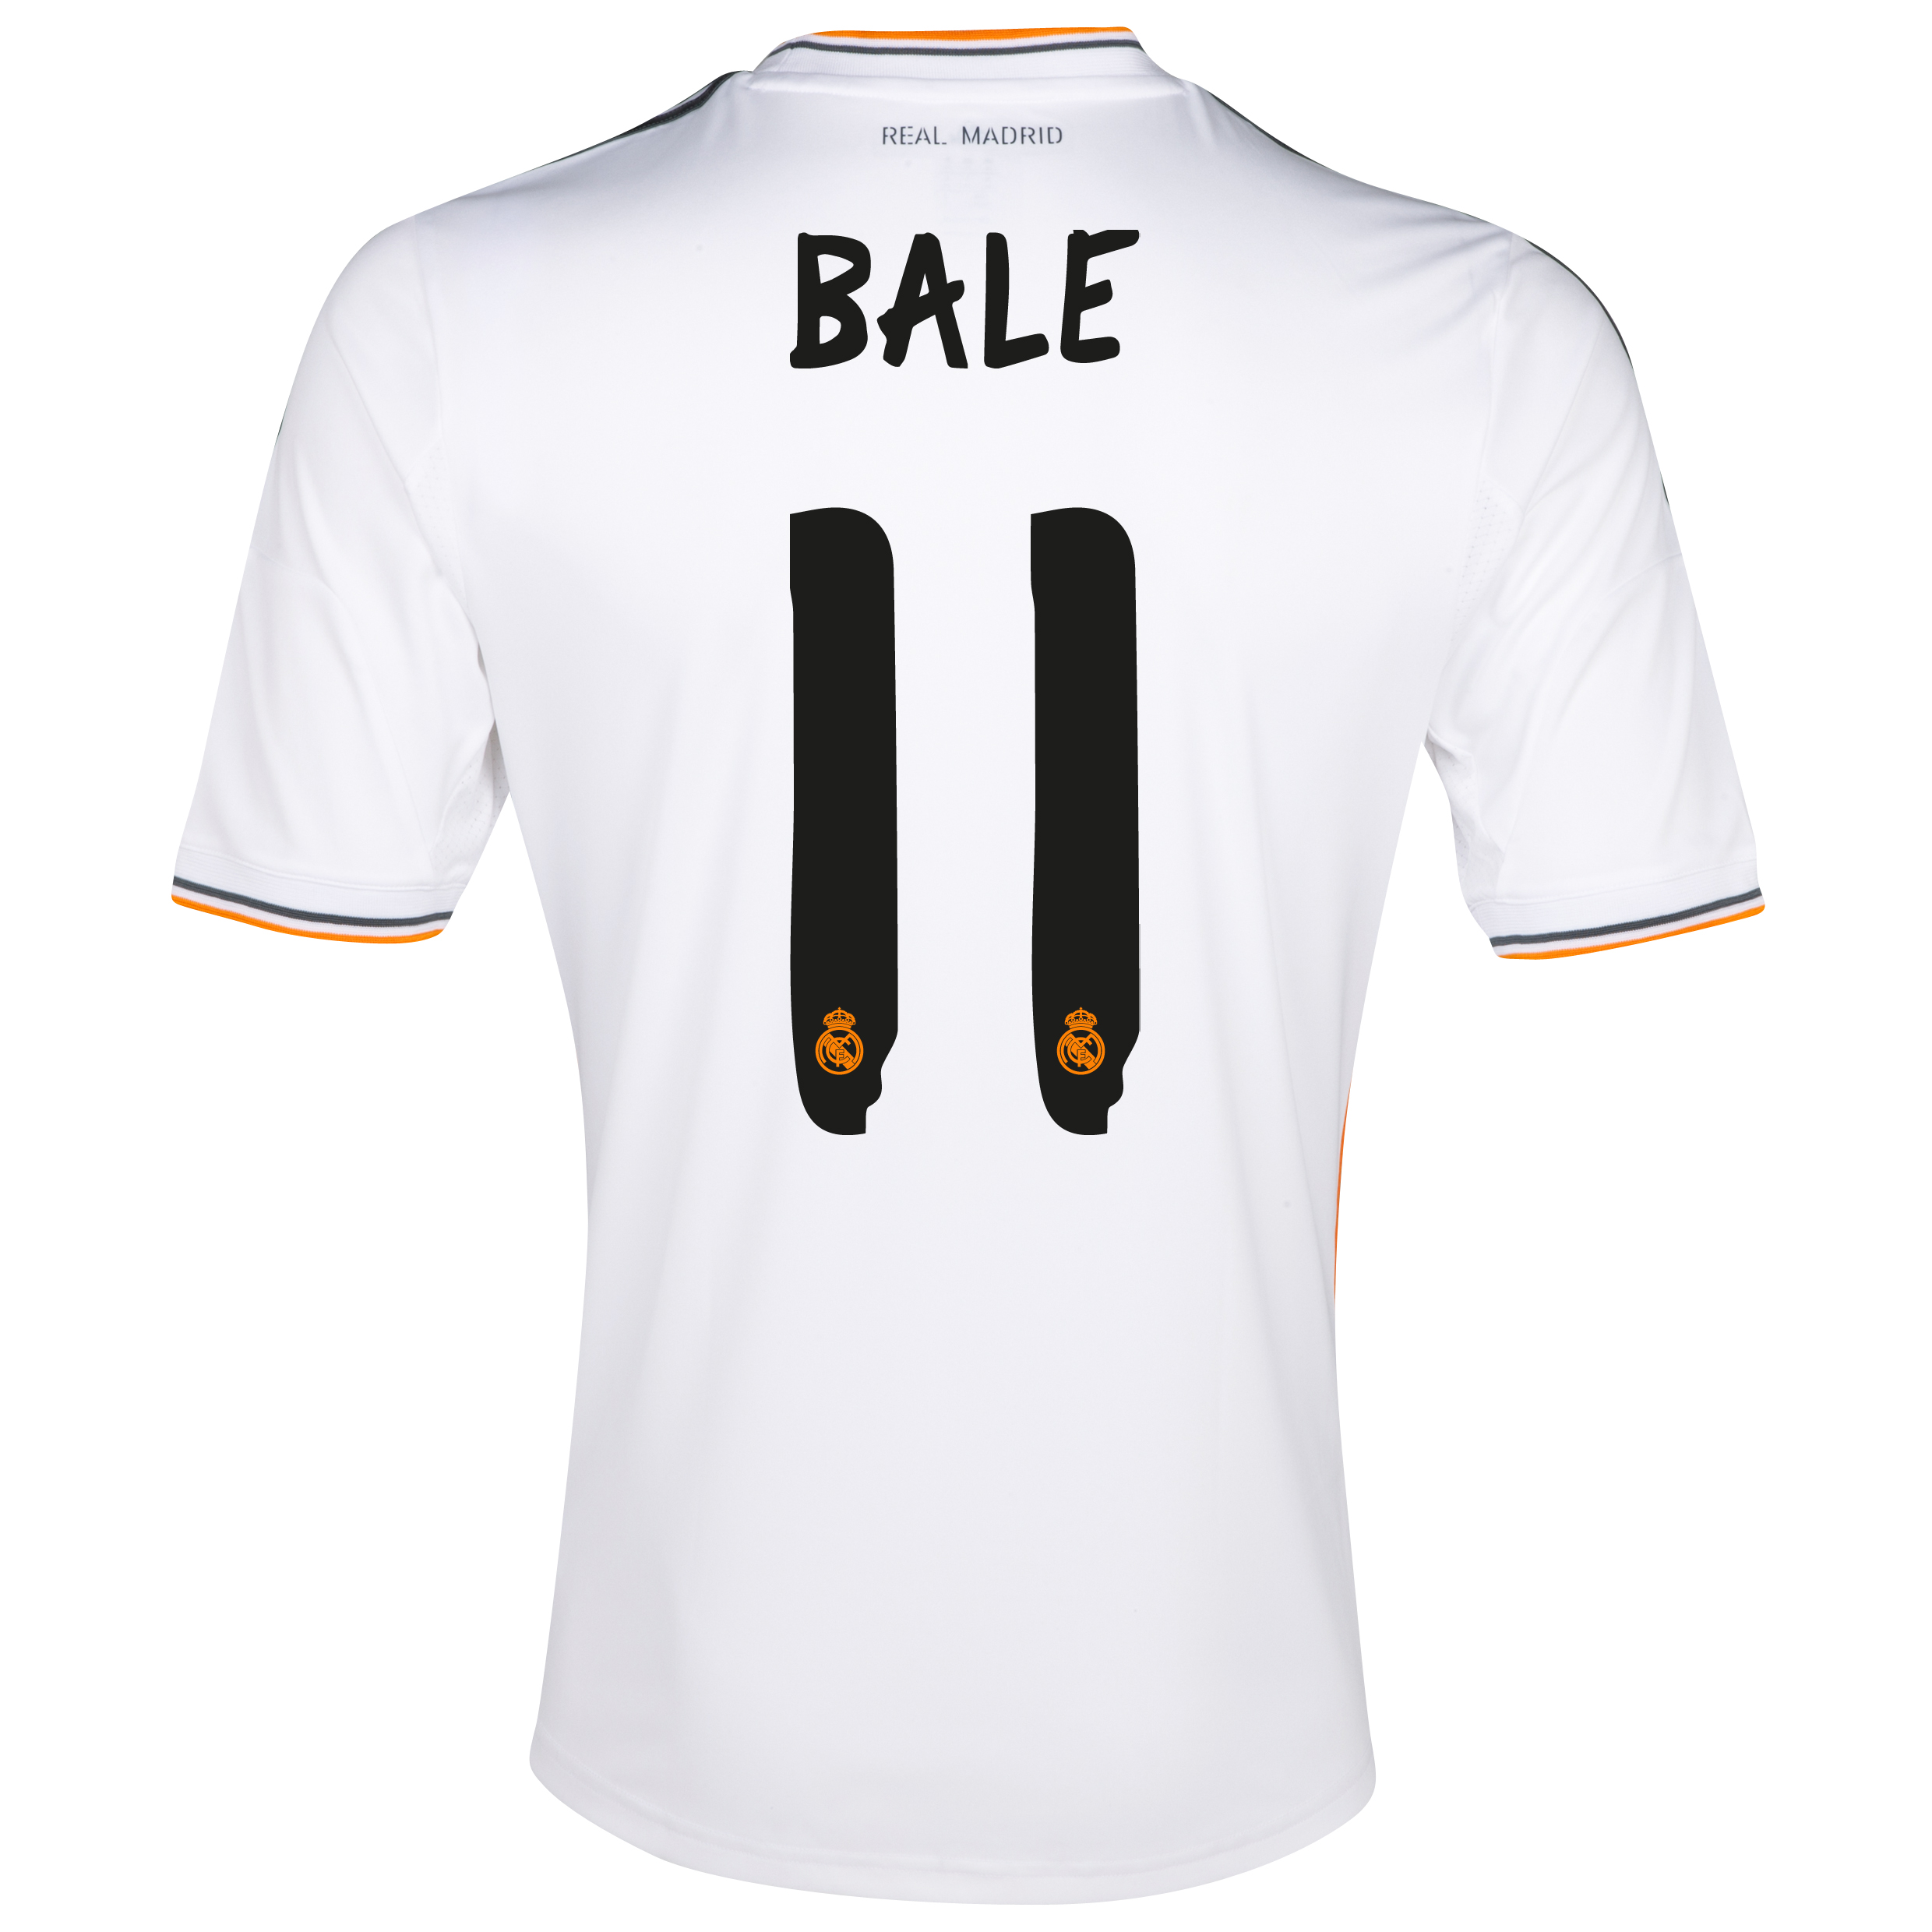 Real Madrid Home Shirt 2013/14 with Bale 11 printing